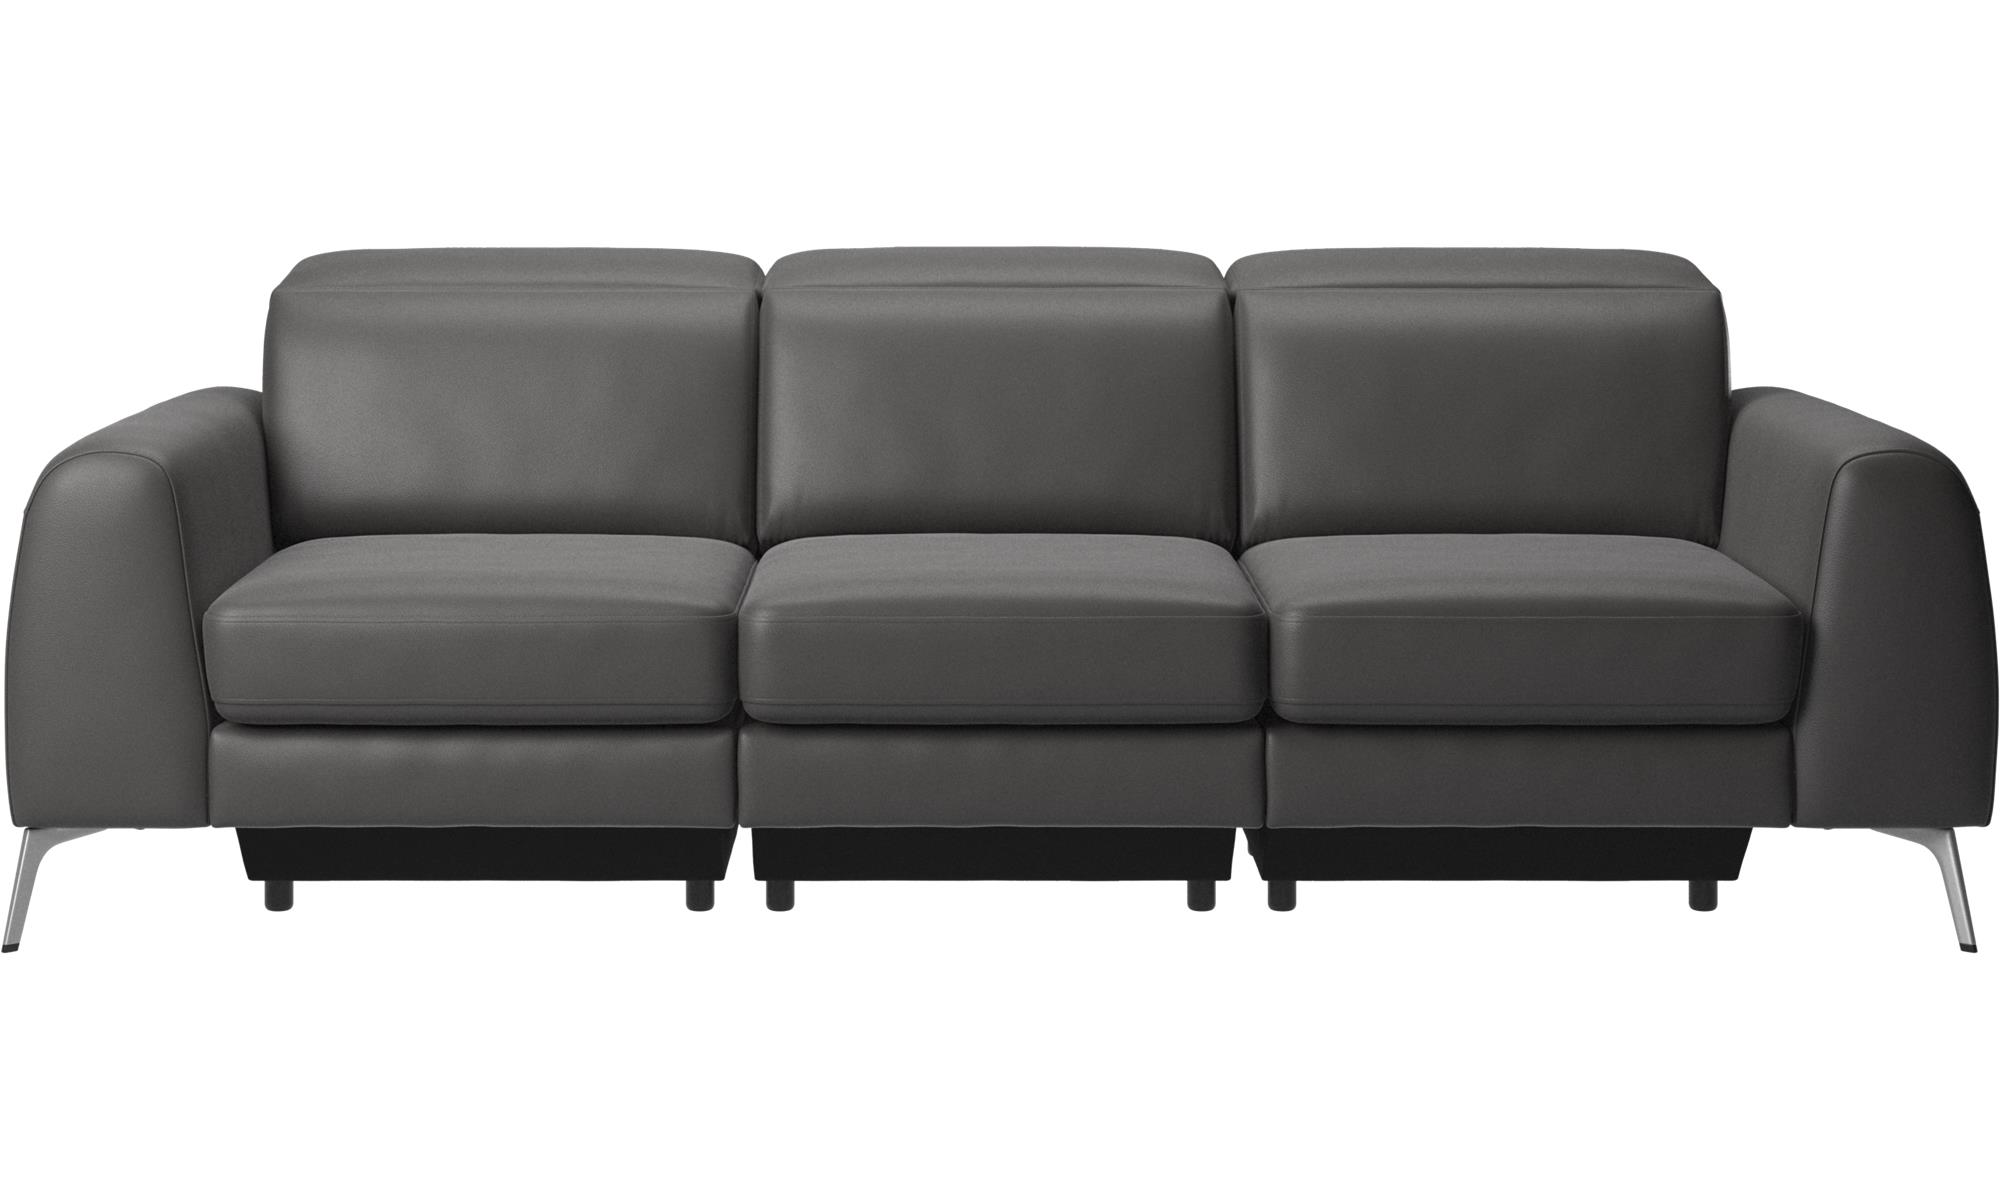 3 sitzer sofas madison sofa mit verstellbarer kopfst tze. Black Bedroom Furniture Sets. Home Design Ideas